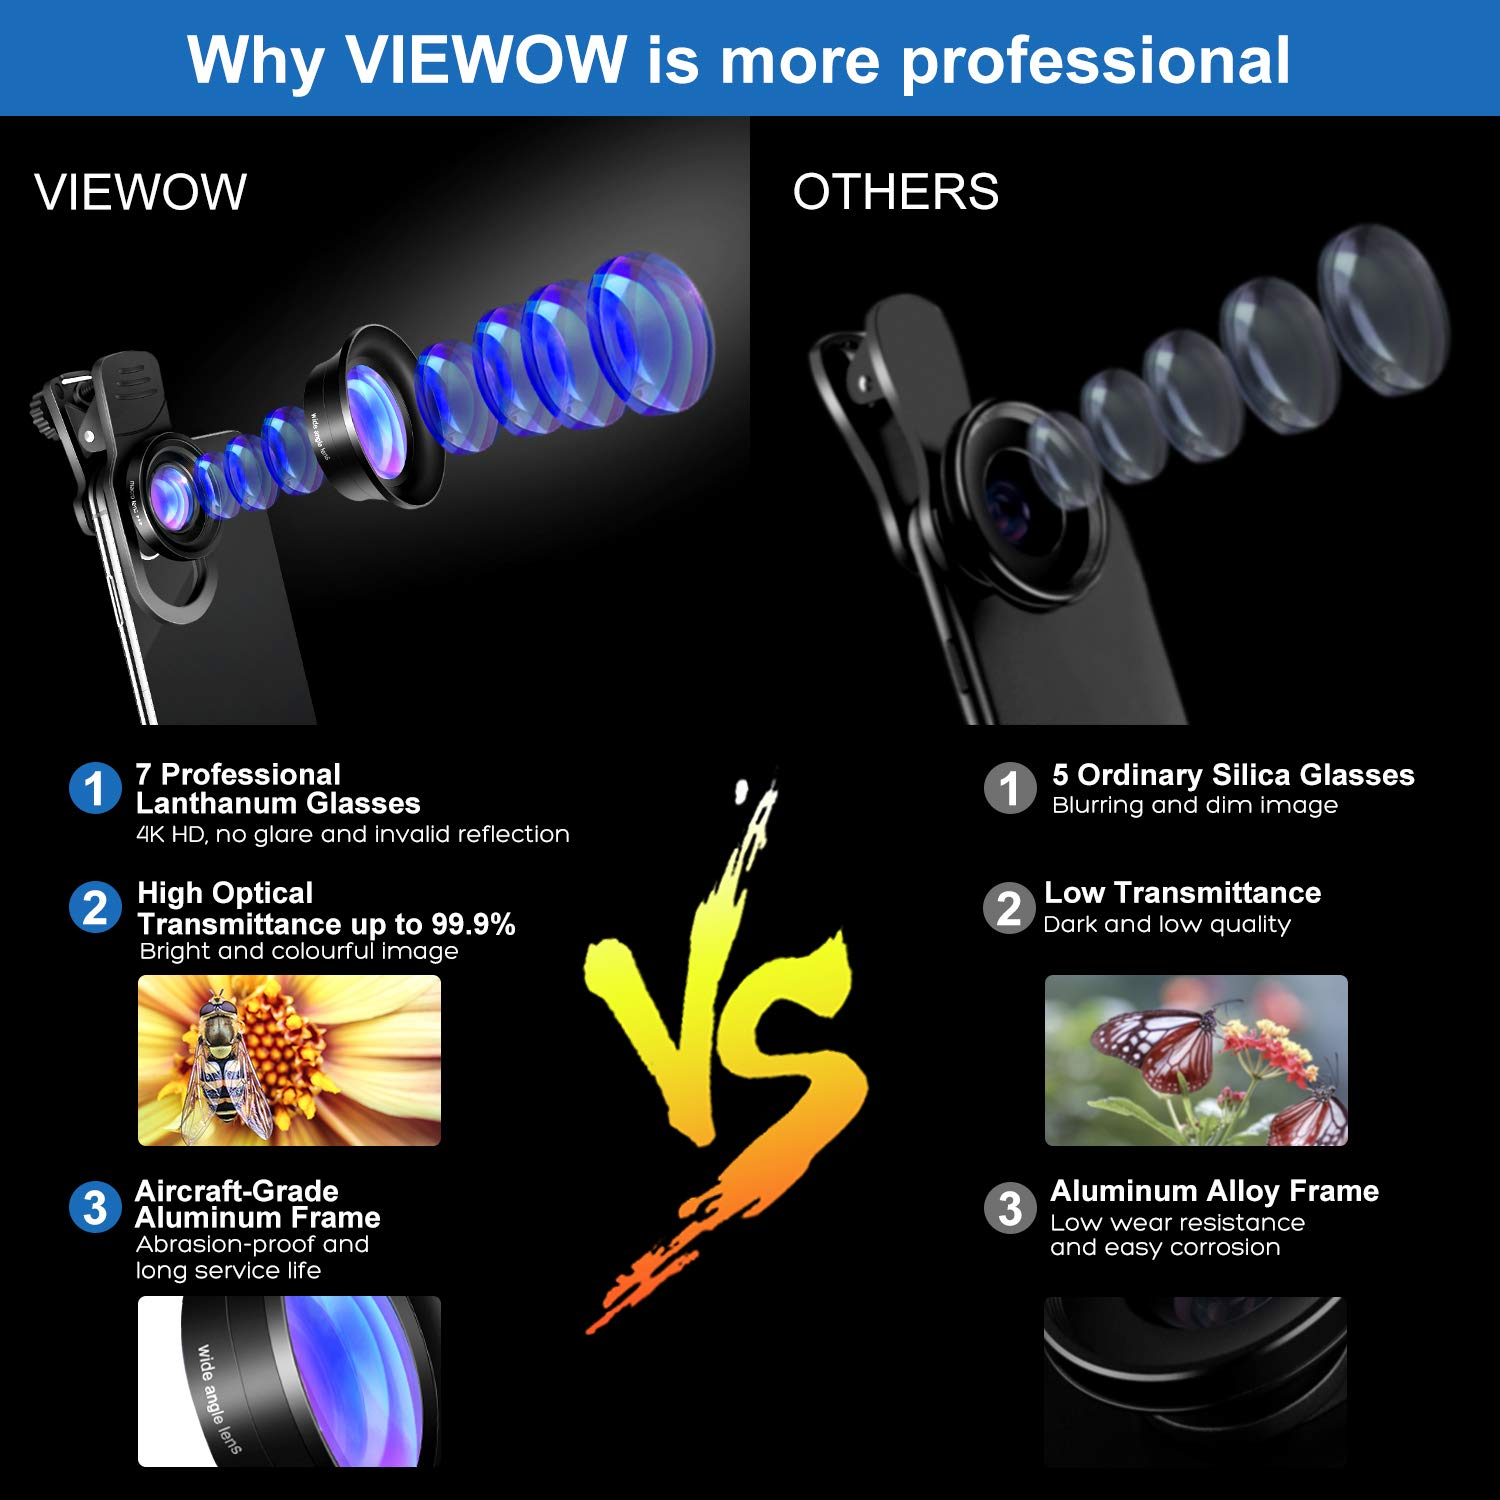 Cell Phone Camera Lens Kit – VIEWOW 4K HD 7 Optical Glasses 15X Macro 0.45X Wide Angle Phone Lens Kit with LED Light and Travel Case, Compatible with iPhone X/XS/8/7 Plus Samsung Pixel by VIEWOW (Image #4)